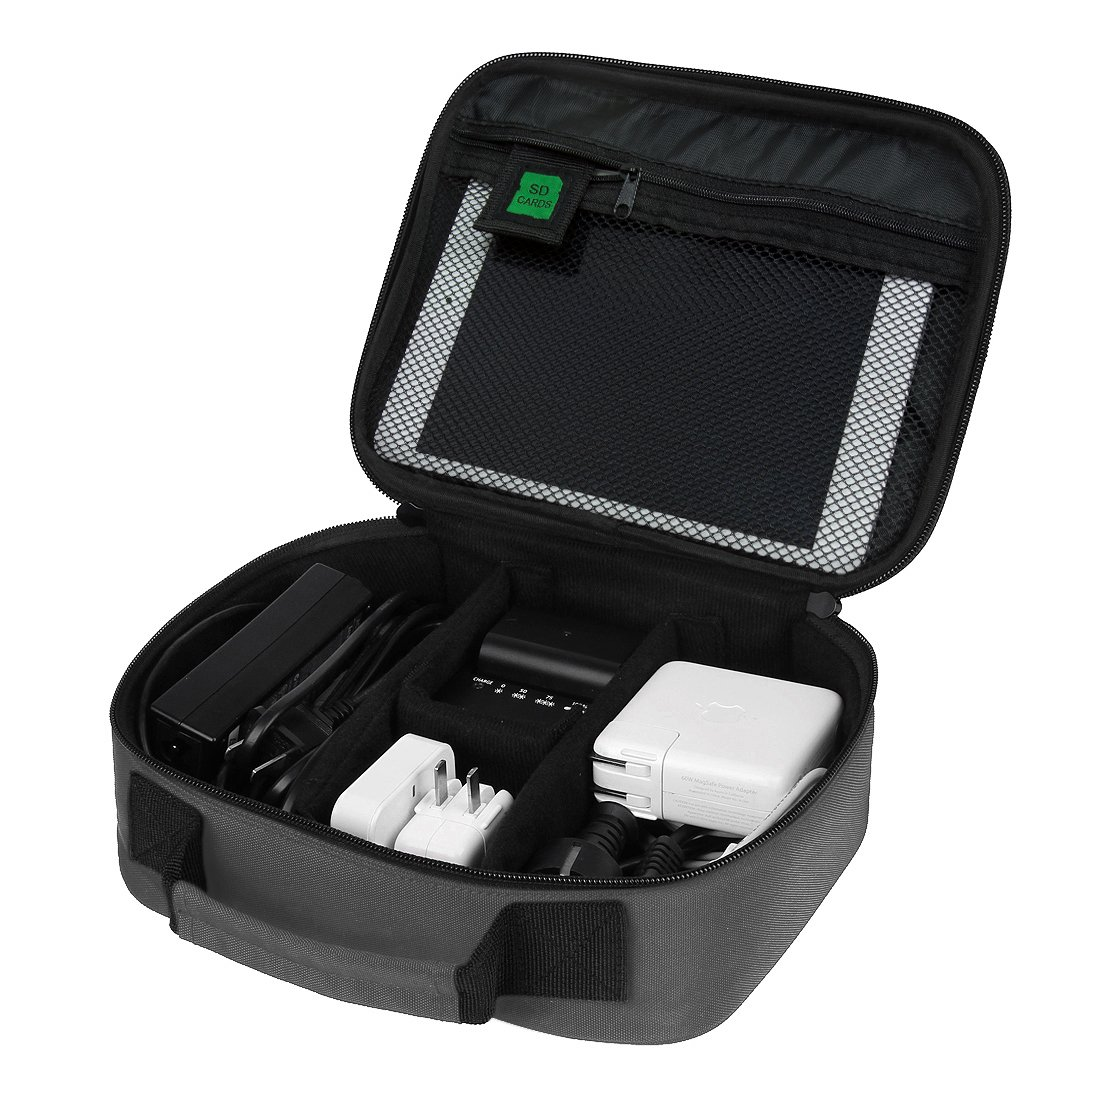 BAGSMART Electronics Travel Organizer Bag Hard Drive Case for Various USB, Phone, Cable, Charger, Dark Grey